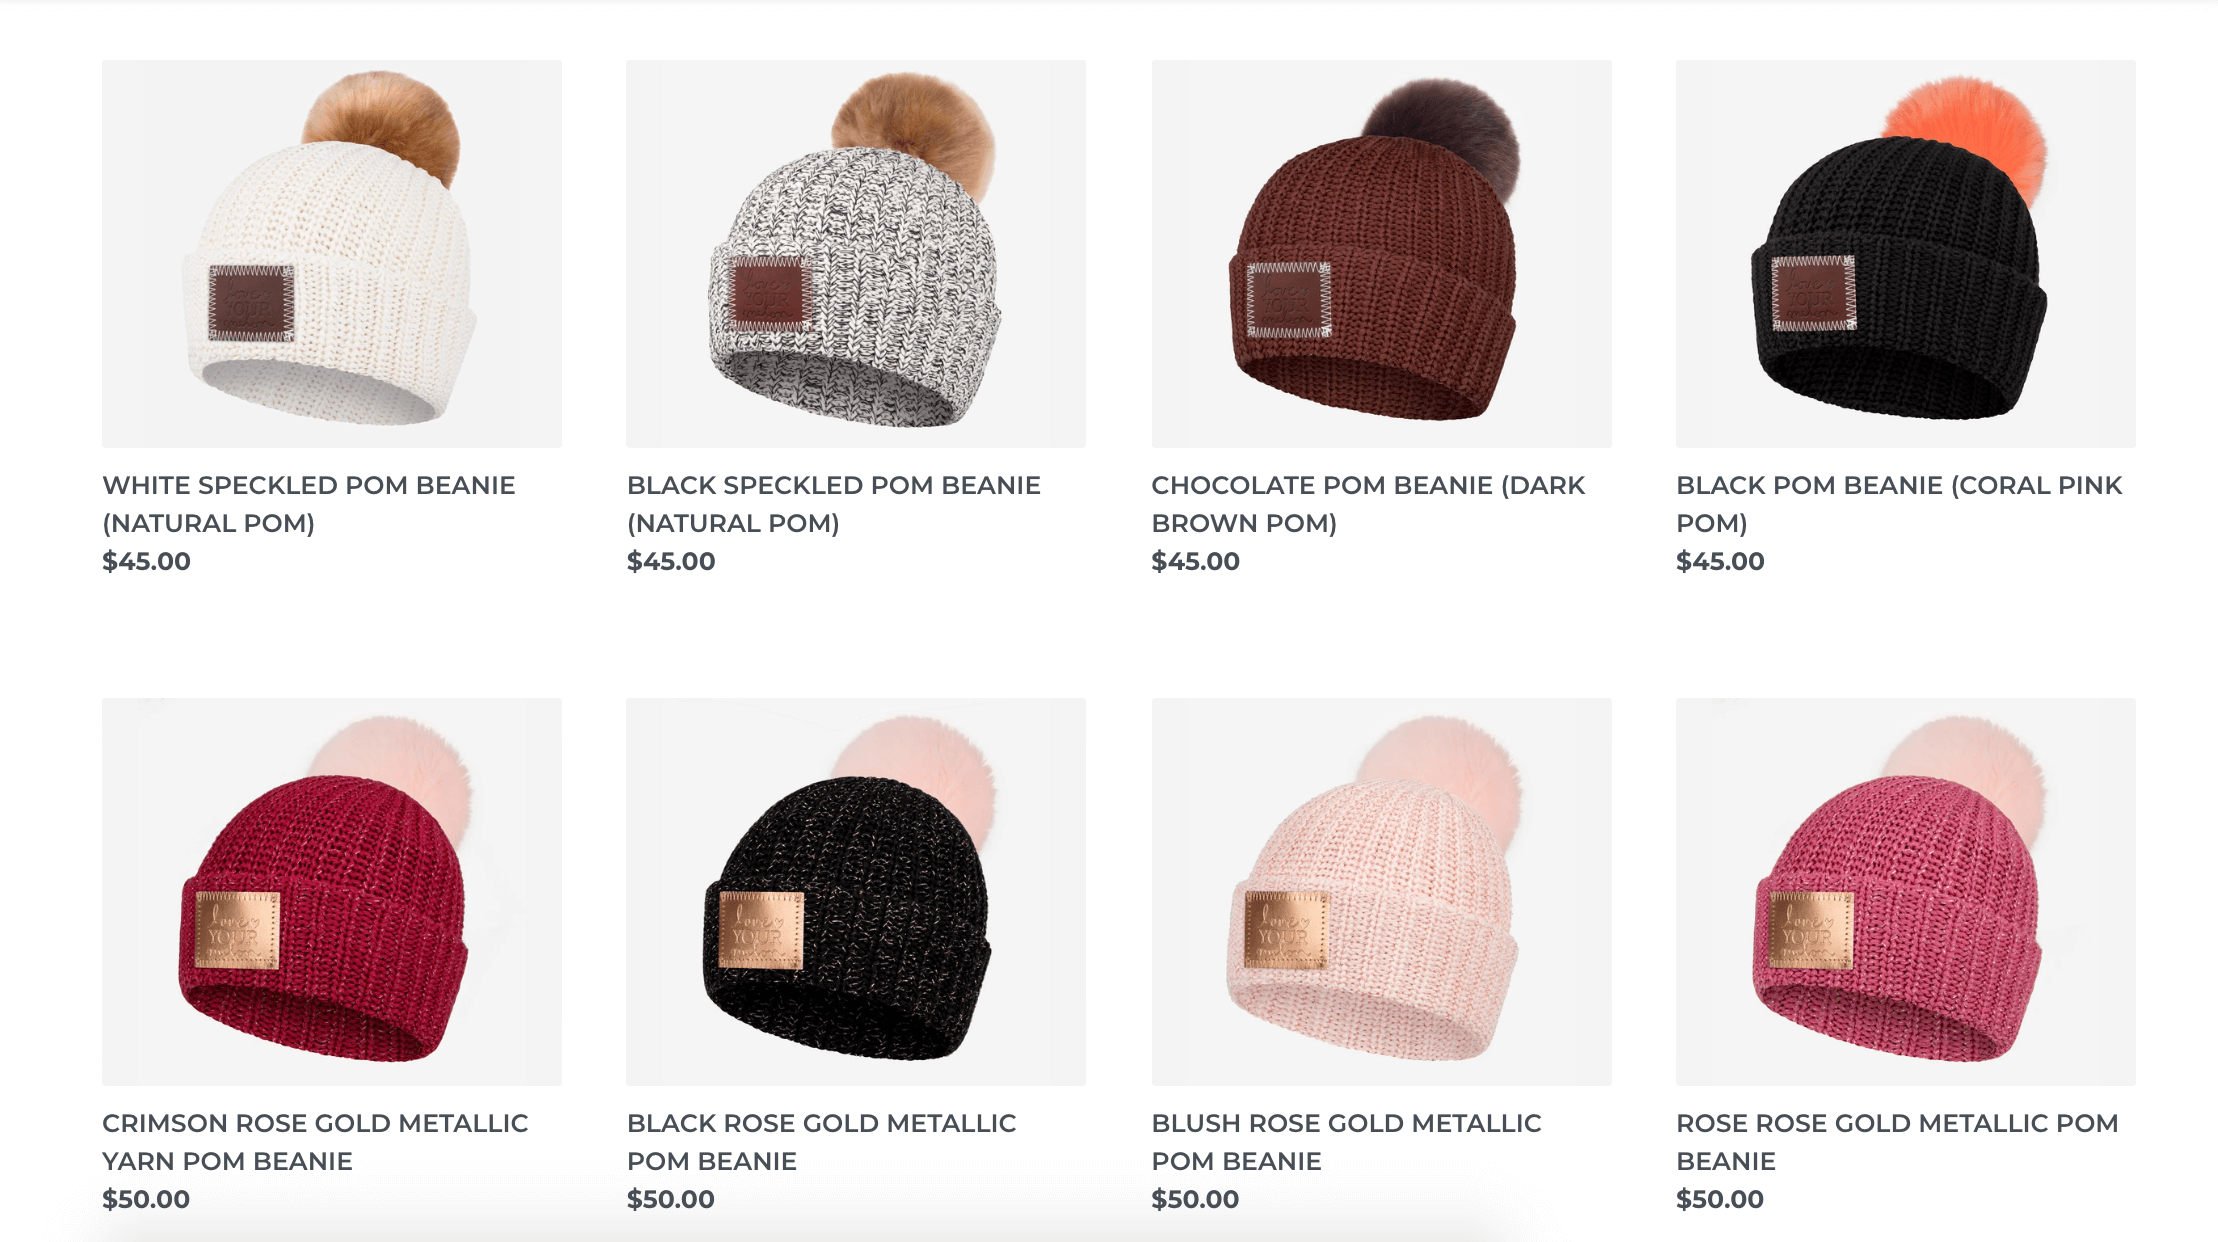 Love your melon product photography